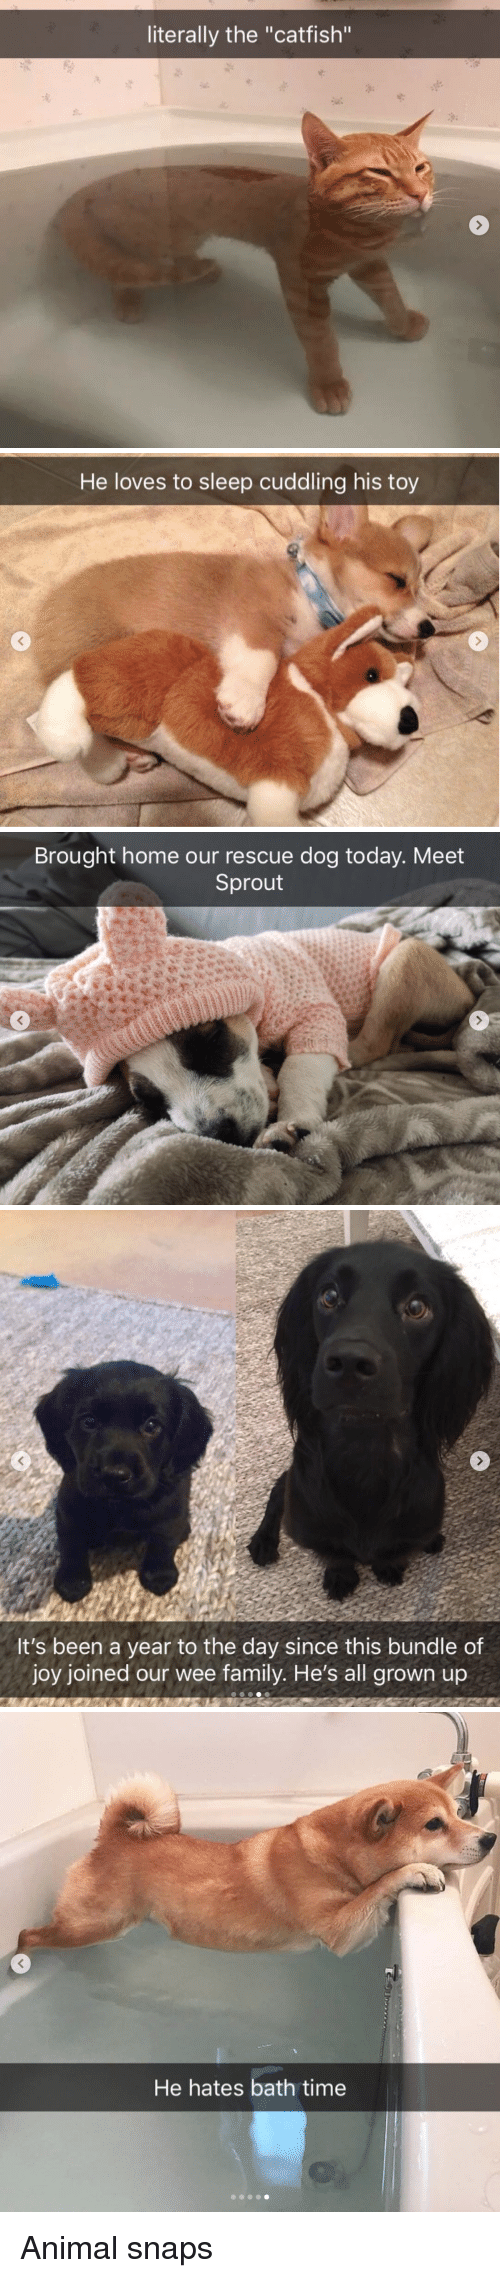 """sprout: literally the """"catfish""""   He loves to sleep cuddling his toy   Brought home our rescue dog today. Meet  Sprout   It's been a year to the day since this bundle of  joy joined our wee family. He's all grown up   He hates bath time Animal snaps"""